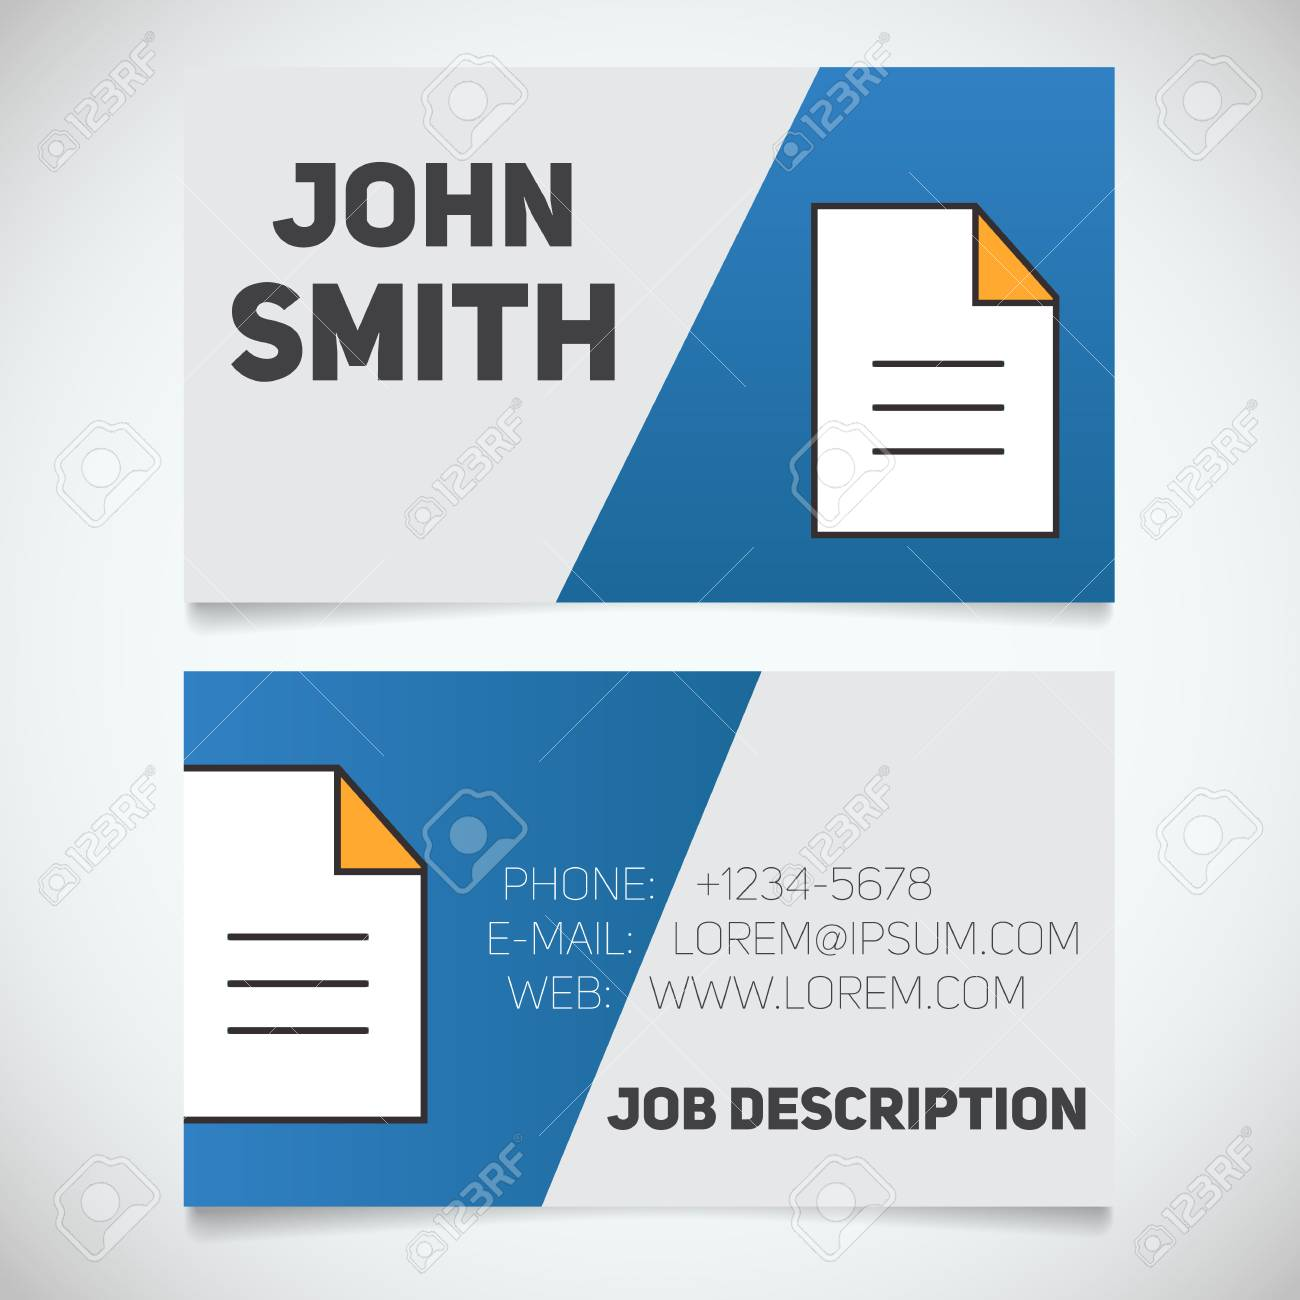 Business card print template with document logo easy edit editor business card print template with document logo easy edit editor writer stationery colourmoves